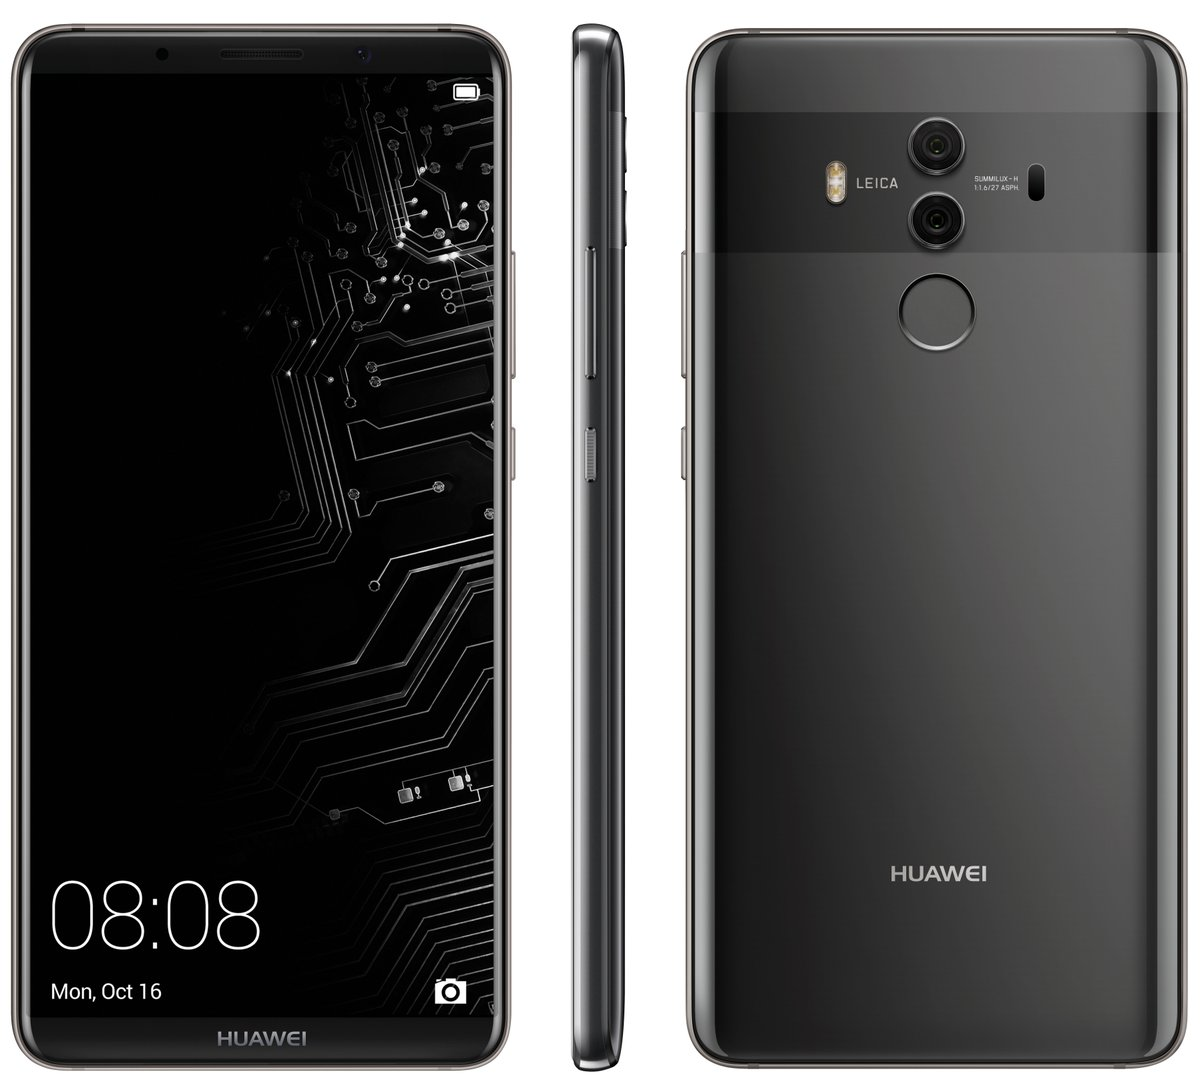 The Huawei Mate 10 Pro leaked by Evan Blass on the 12th of October 2017